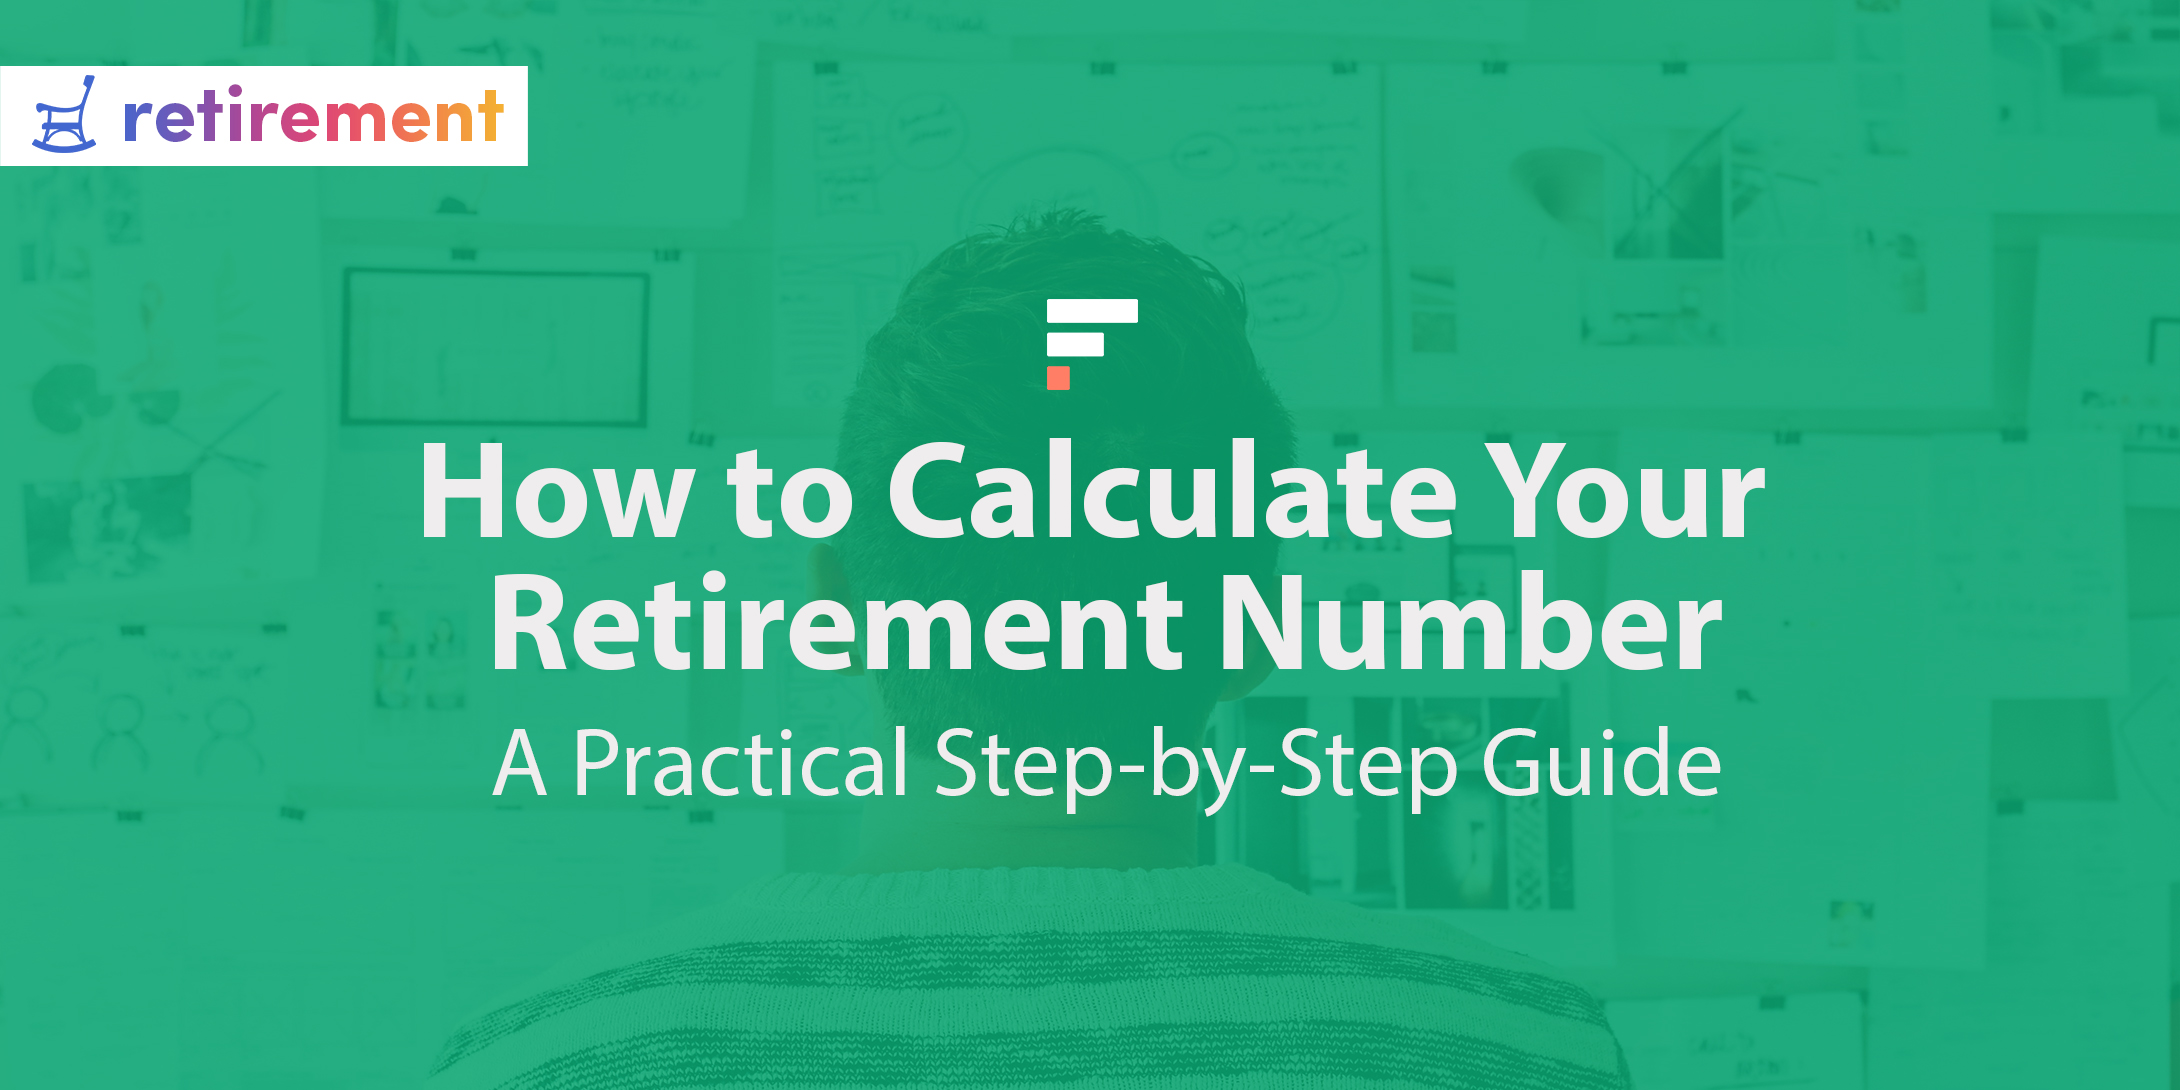 How to Calculate Your Retirement Number: A Practical Step-by-Step Guide